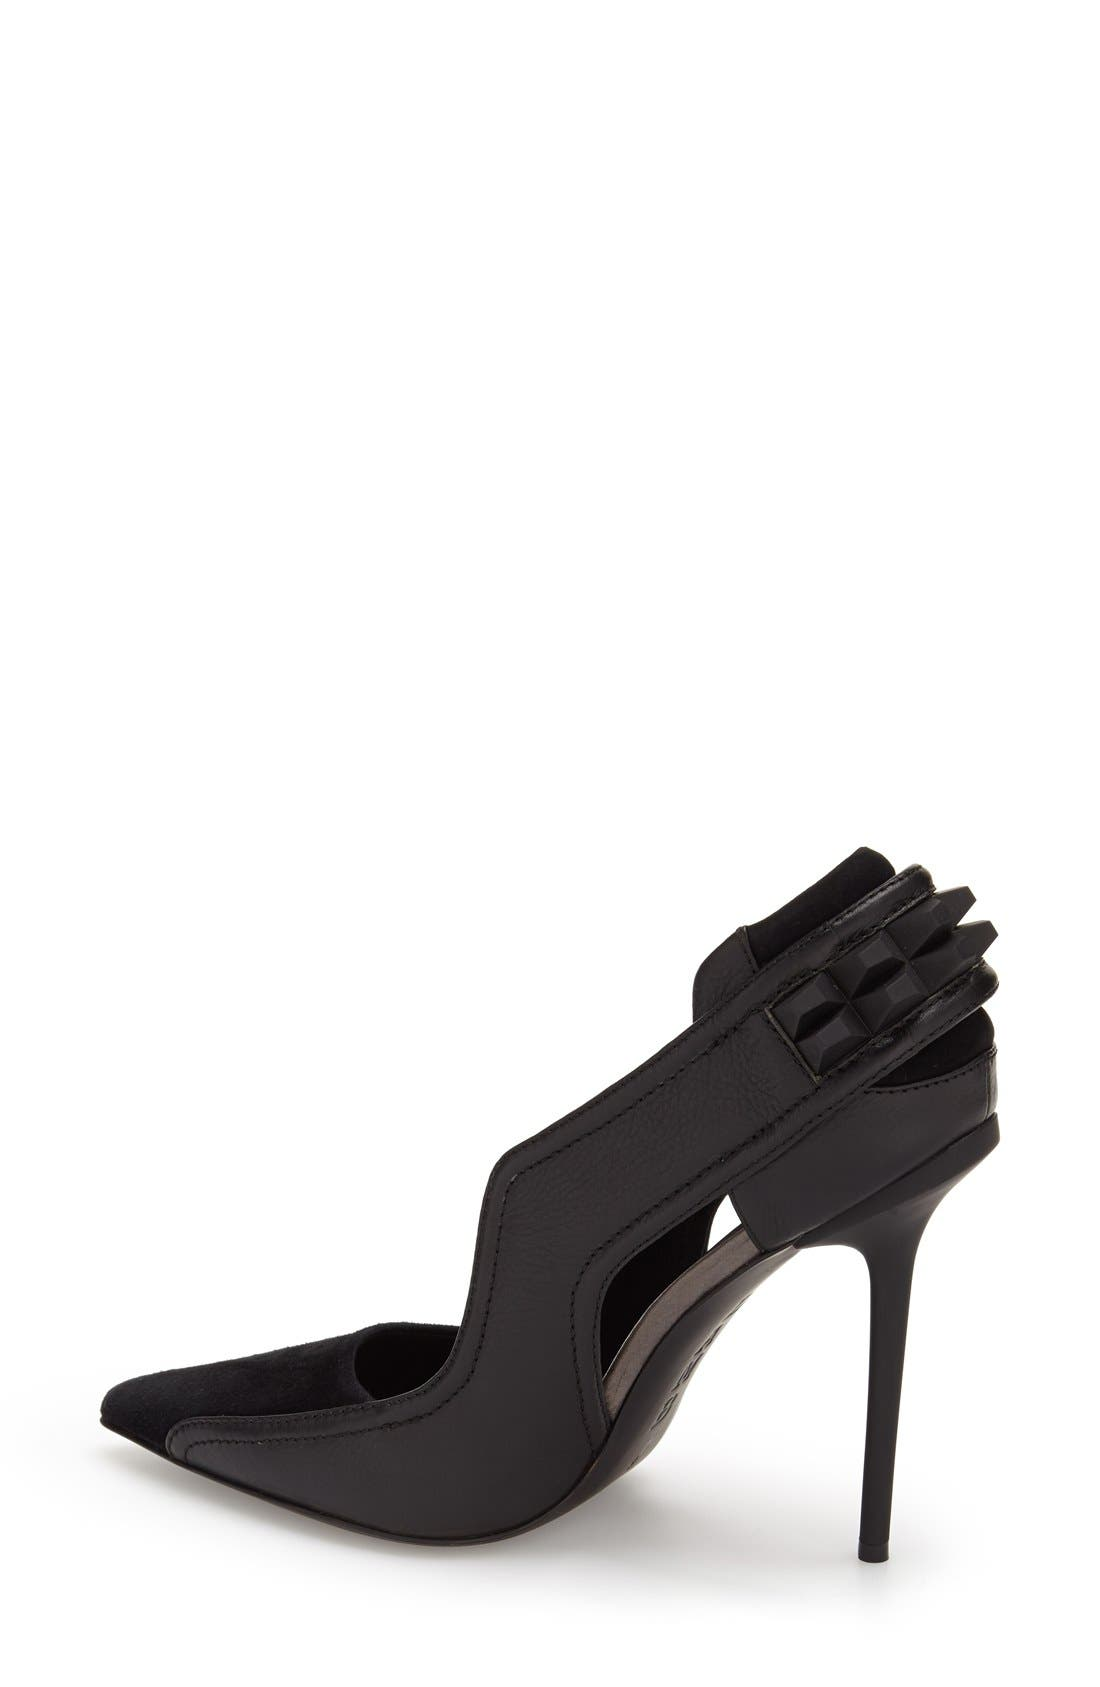 'Enforce' Leather & Suede Pointy Toe Pump,                             Alternate thumbnail 4, color,                             002